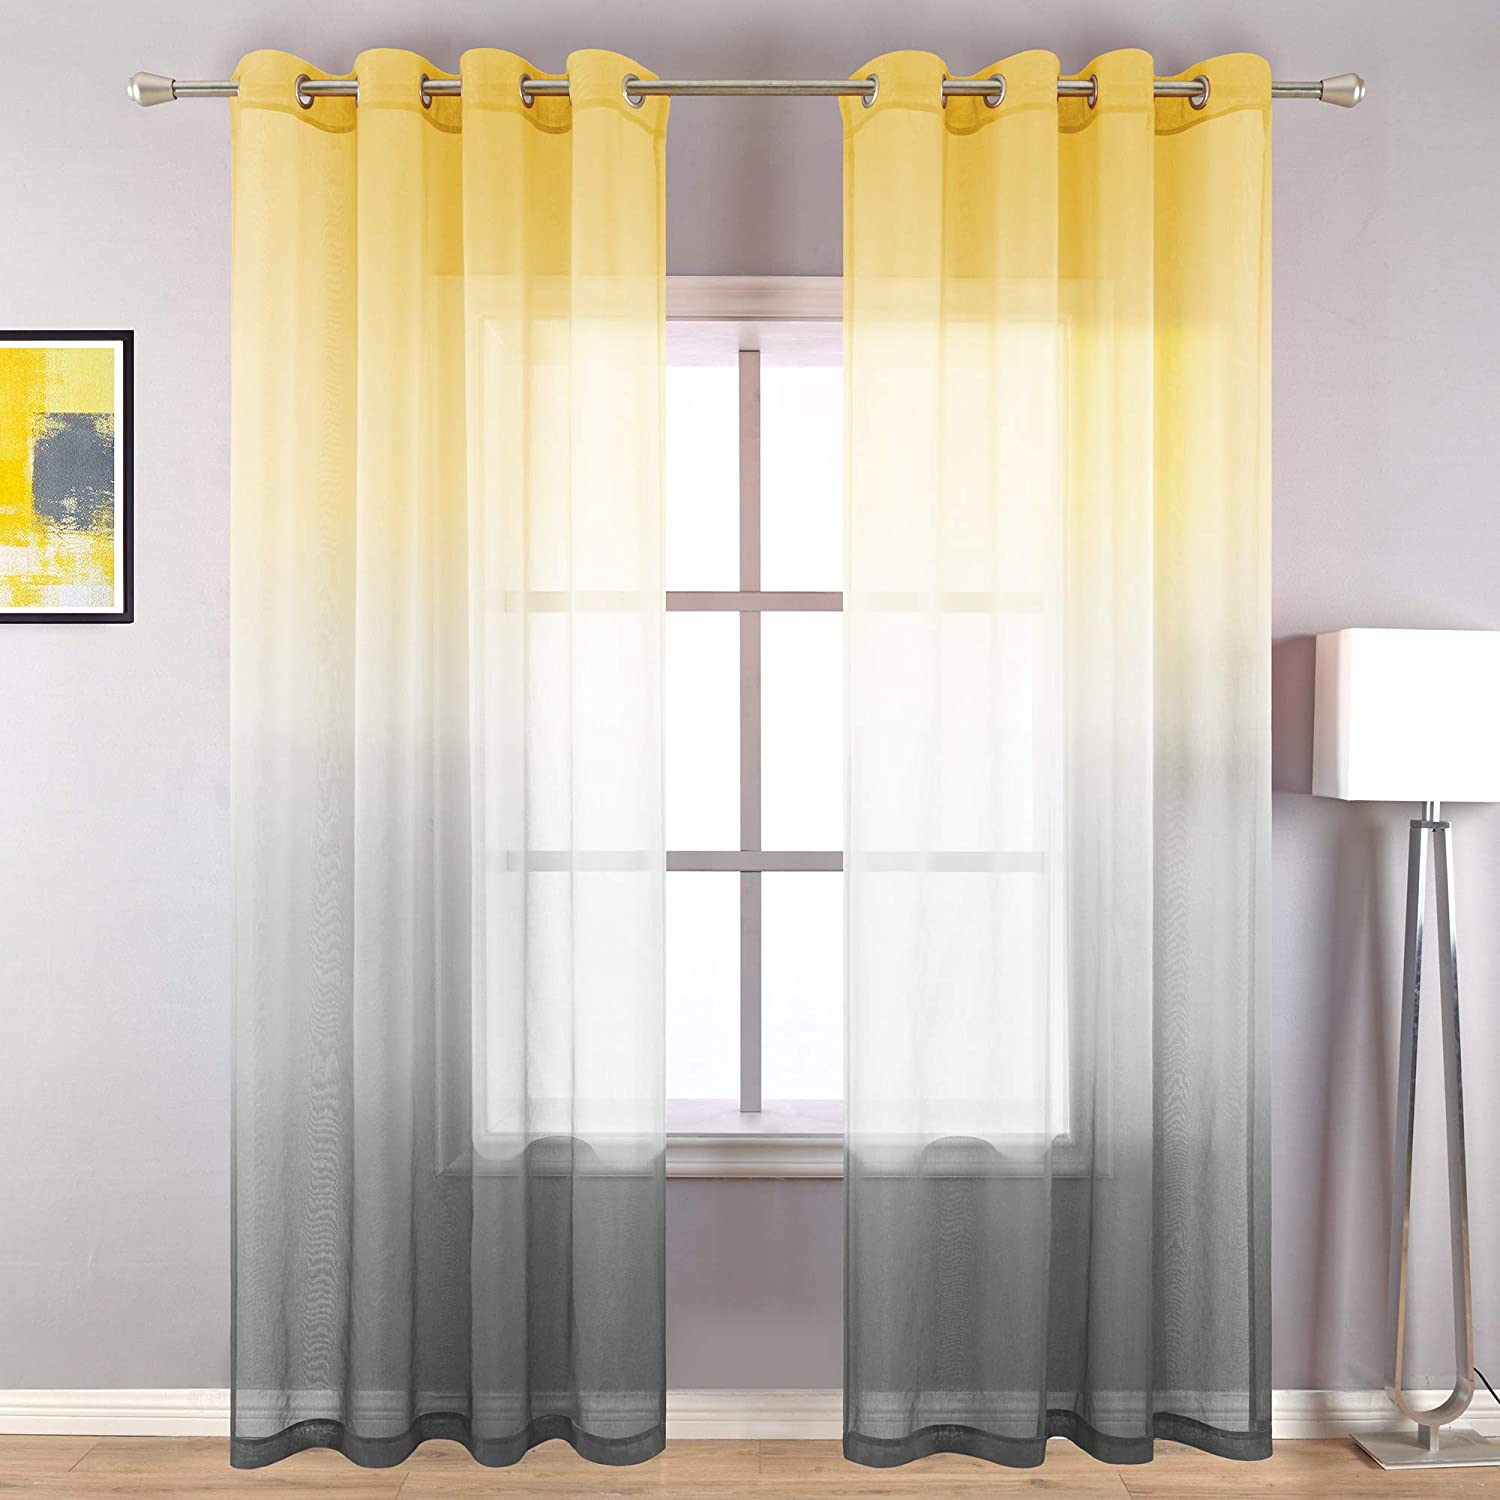 Amazon Com Yellow Curtains 96 Inches Long For Living Room Set Of 2 Panels Grommet Drapes Window Sheer Curtain Panel For Bedroom Dining Room Yellow And Grey Gray 52x96 Inch Length Kitchen